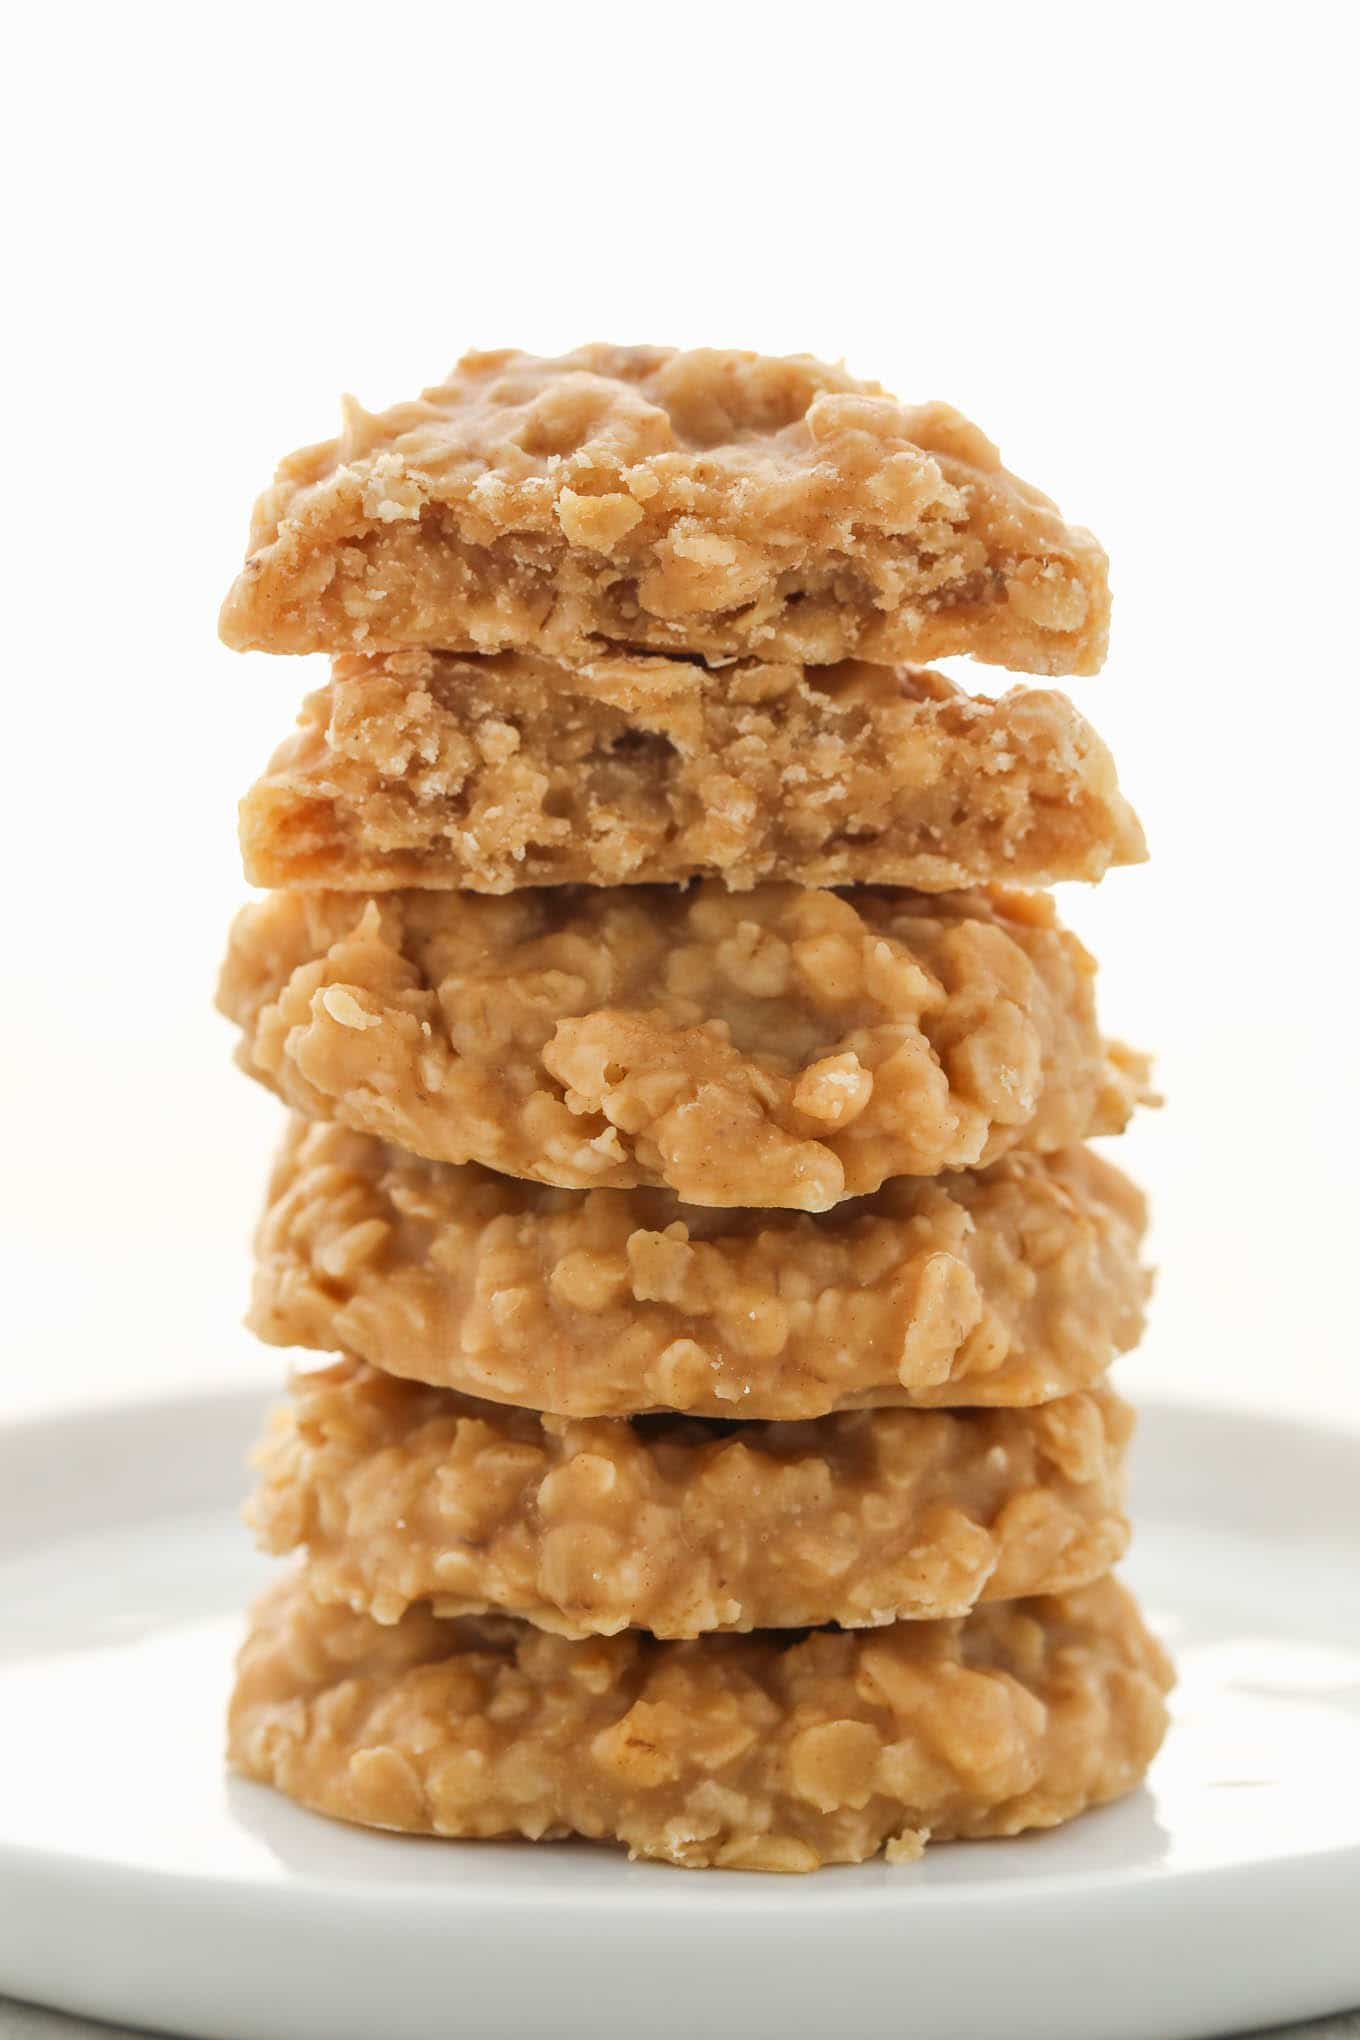 These Peanut Butter No-Bake Cookies are full of peanut butter flavor, only require a few simple ingredients, and are incredibly easy to make!